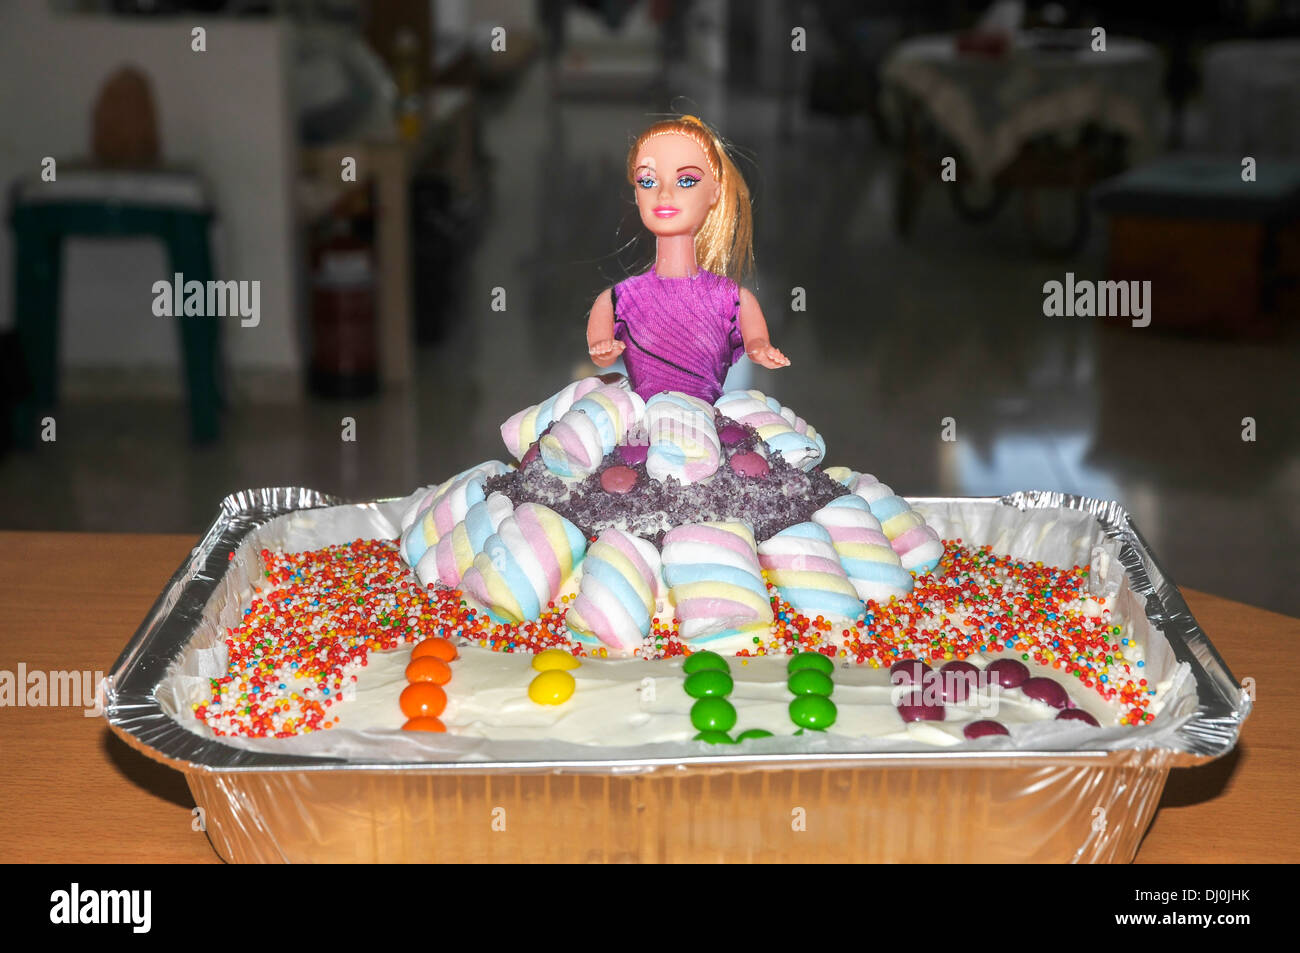 Fine Barbie Doll Birthday Cake Decorated With Smarties And Hundreds And Funny Birthday Cards Online Elaedamsfinfo